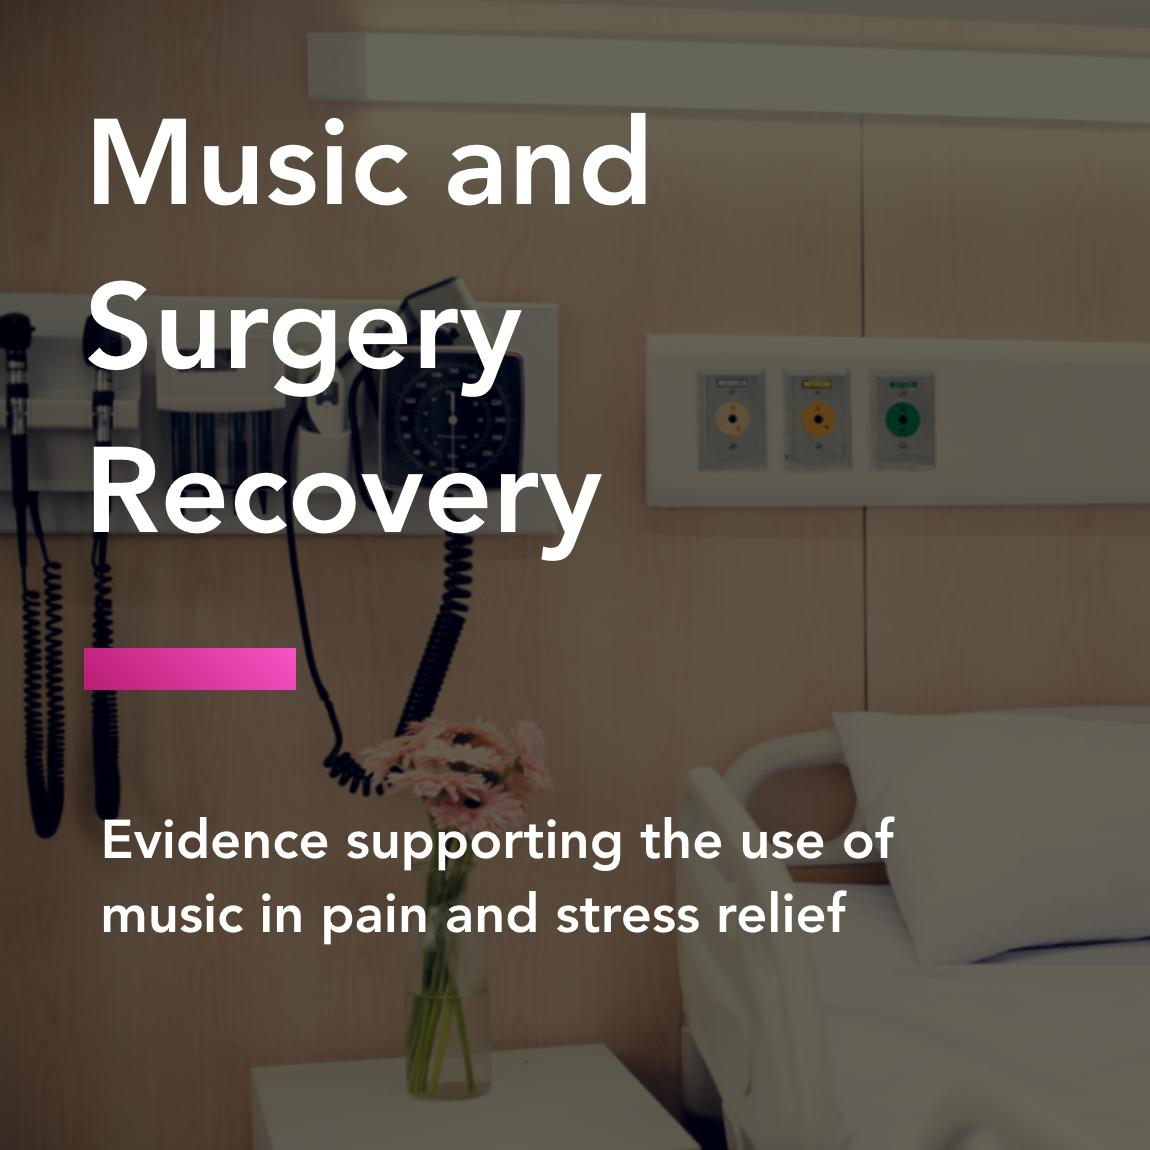 music and surgery title